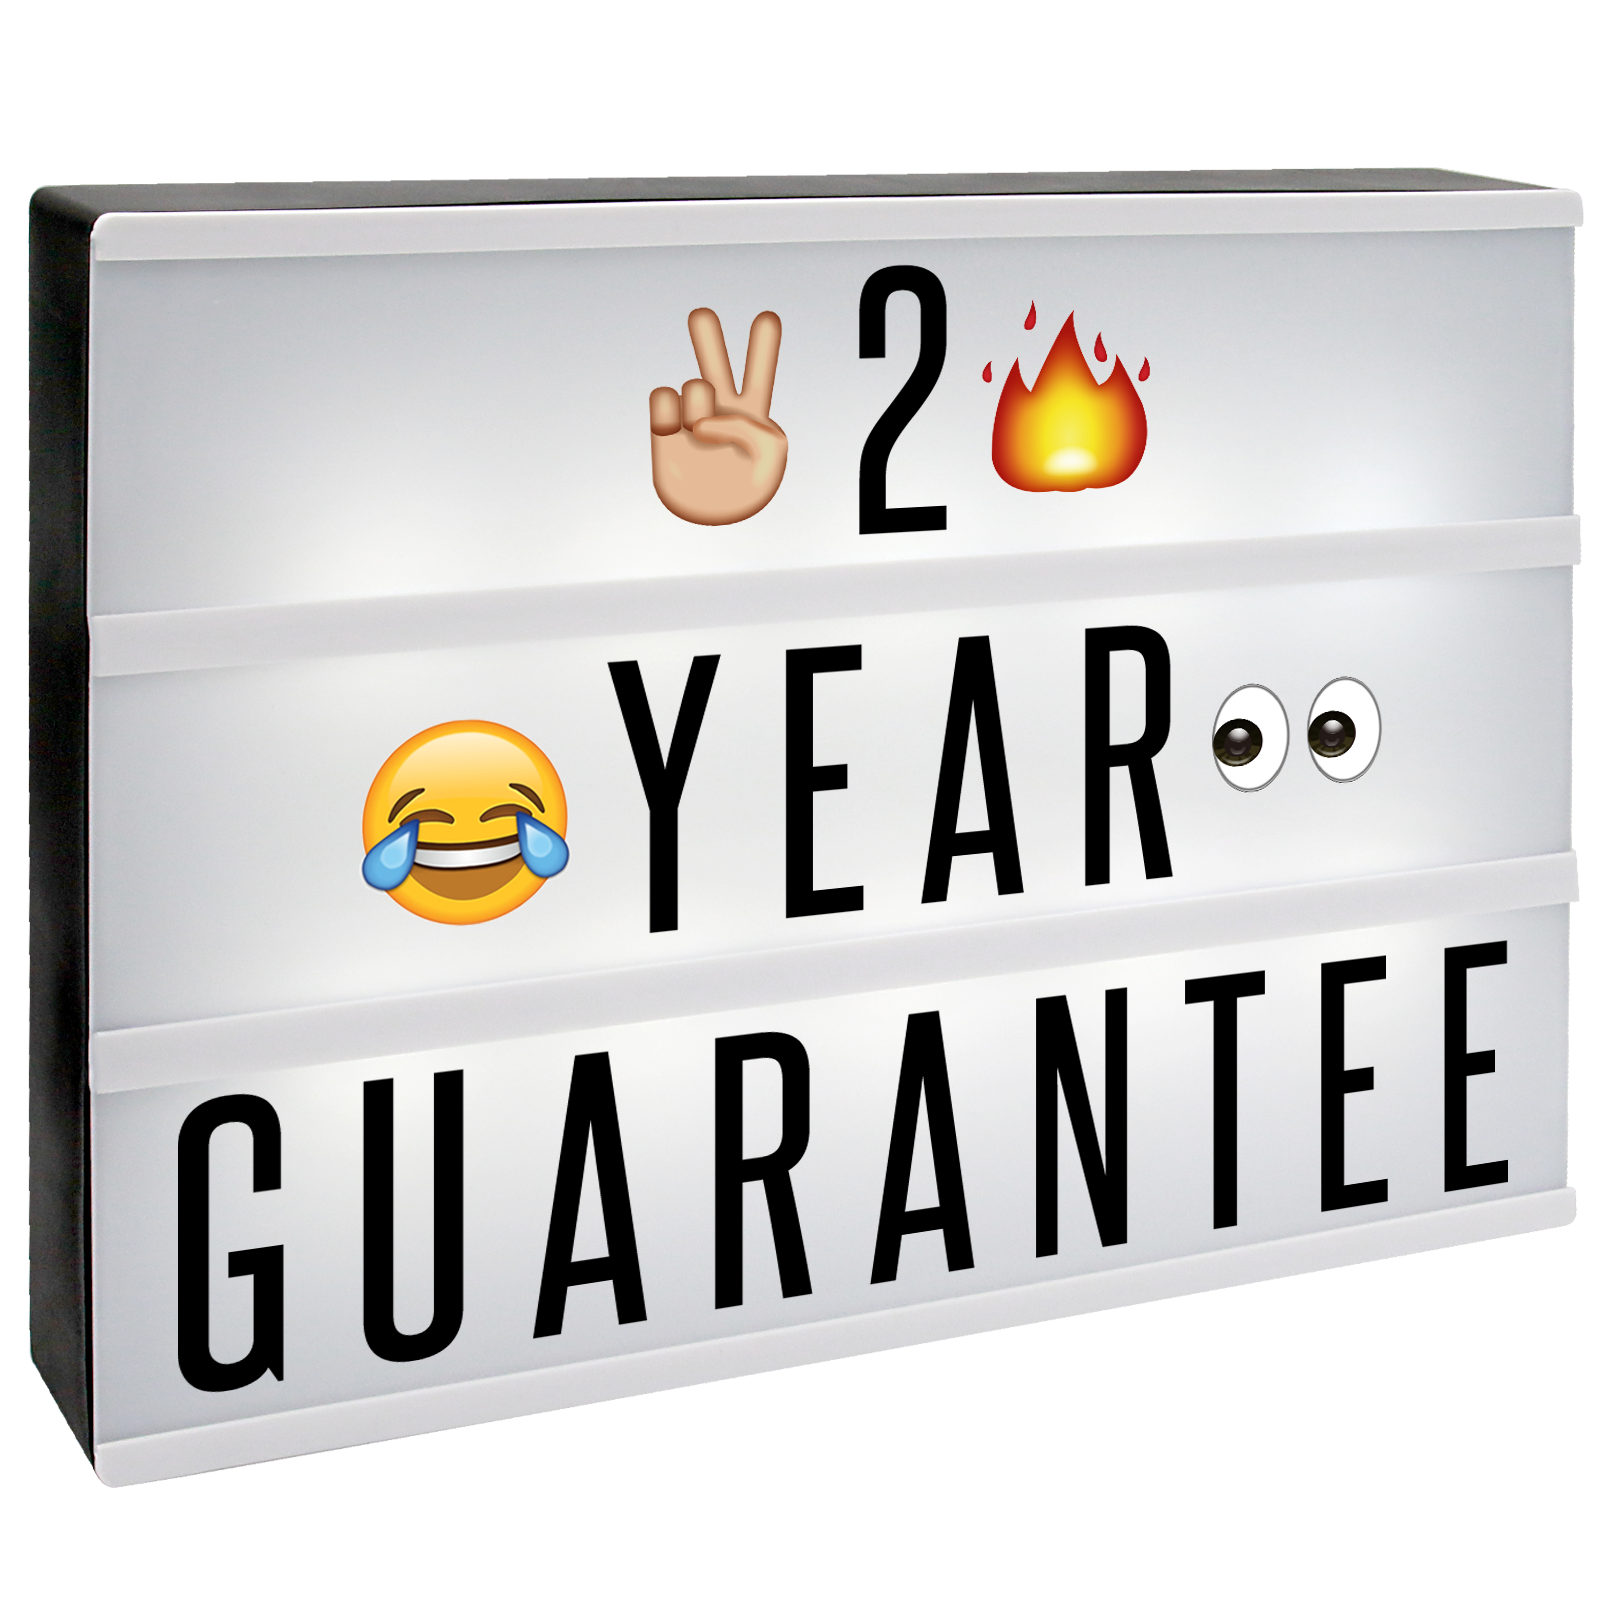 Letter Light Boxes.Details About A4 Cinematic Letter Light Box 205 Emoji Letters Free Usb Cable M W